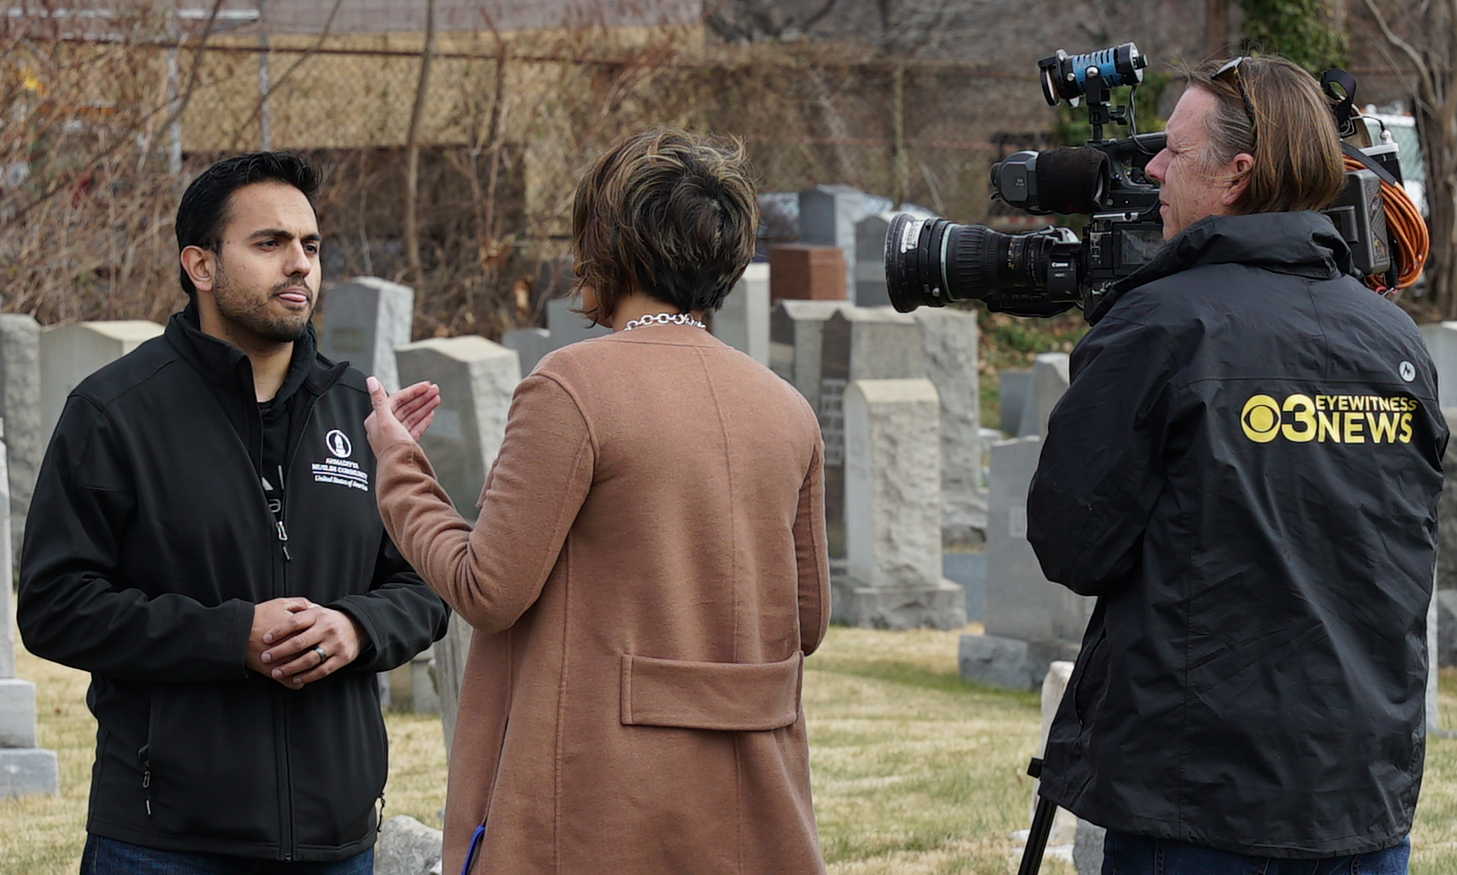 A man representing a Muslim cemetery being interviewed at Mount Carmel Jewish Cemetery in Philadelphia, Pennsylvania.